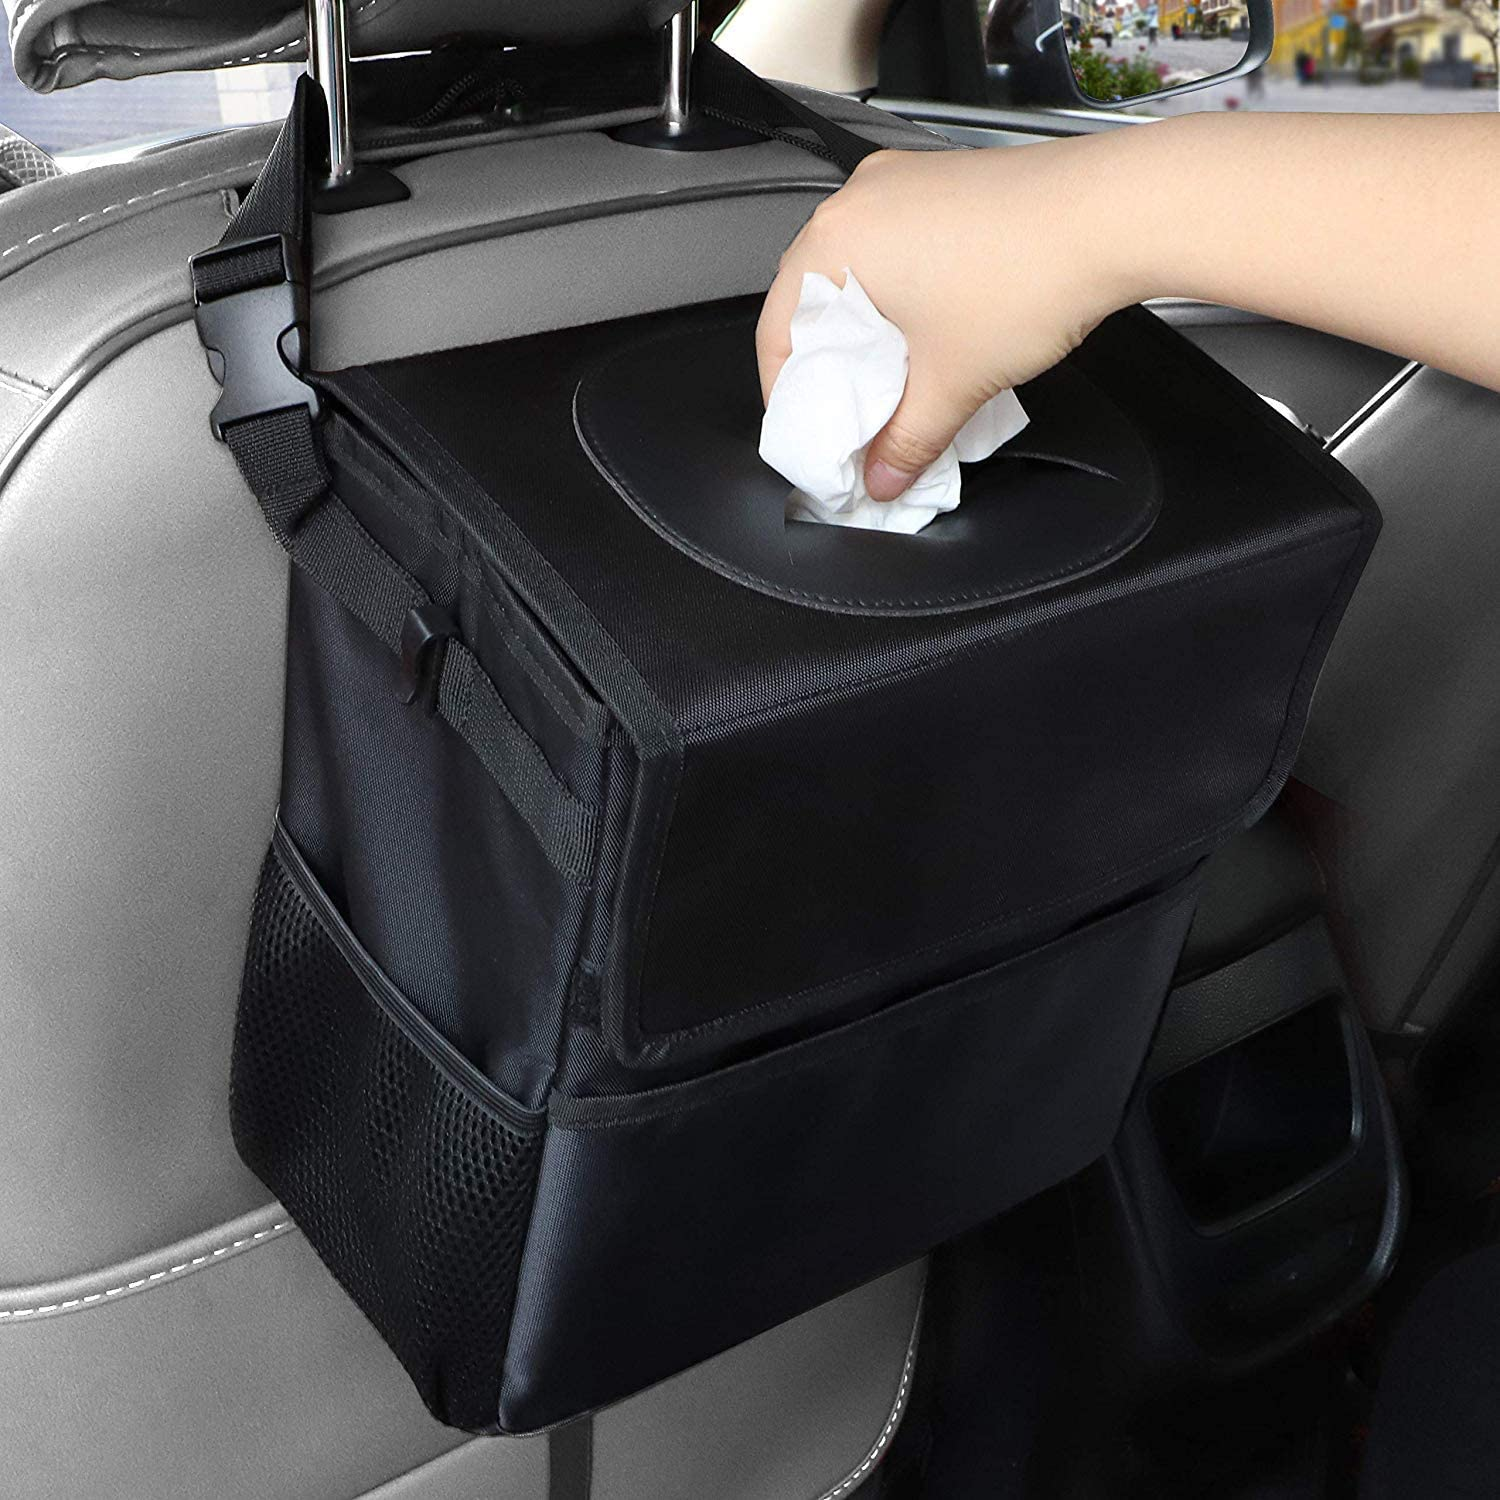 100/% Waterproof Traveling Cup Holder Car Garbage Bag Upgraded Portable Collapsible Car Trash Can with Lid and Clip